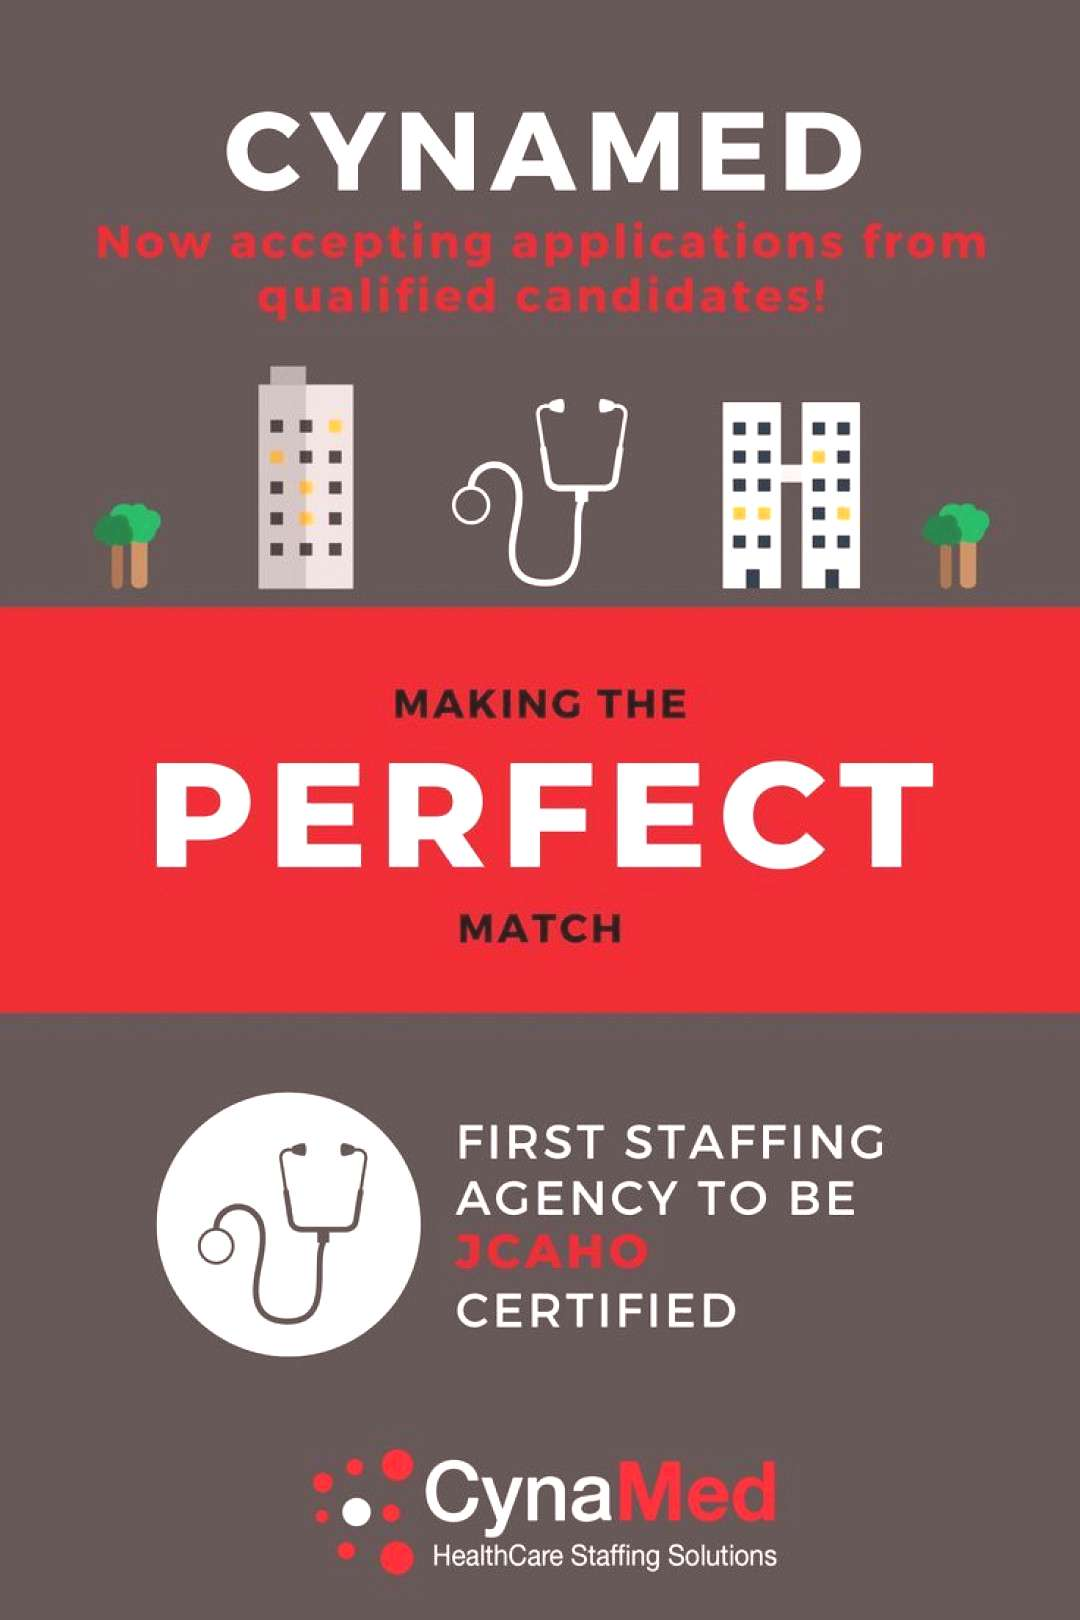 Now Hiring Certified Nurses Assistants | CynaMed Cynamed offers exciting career opportunities for